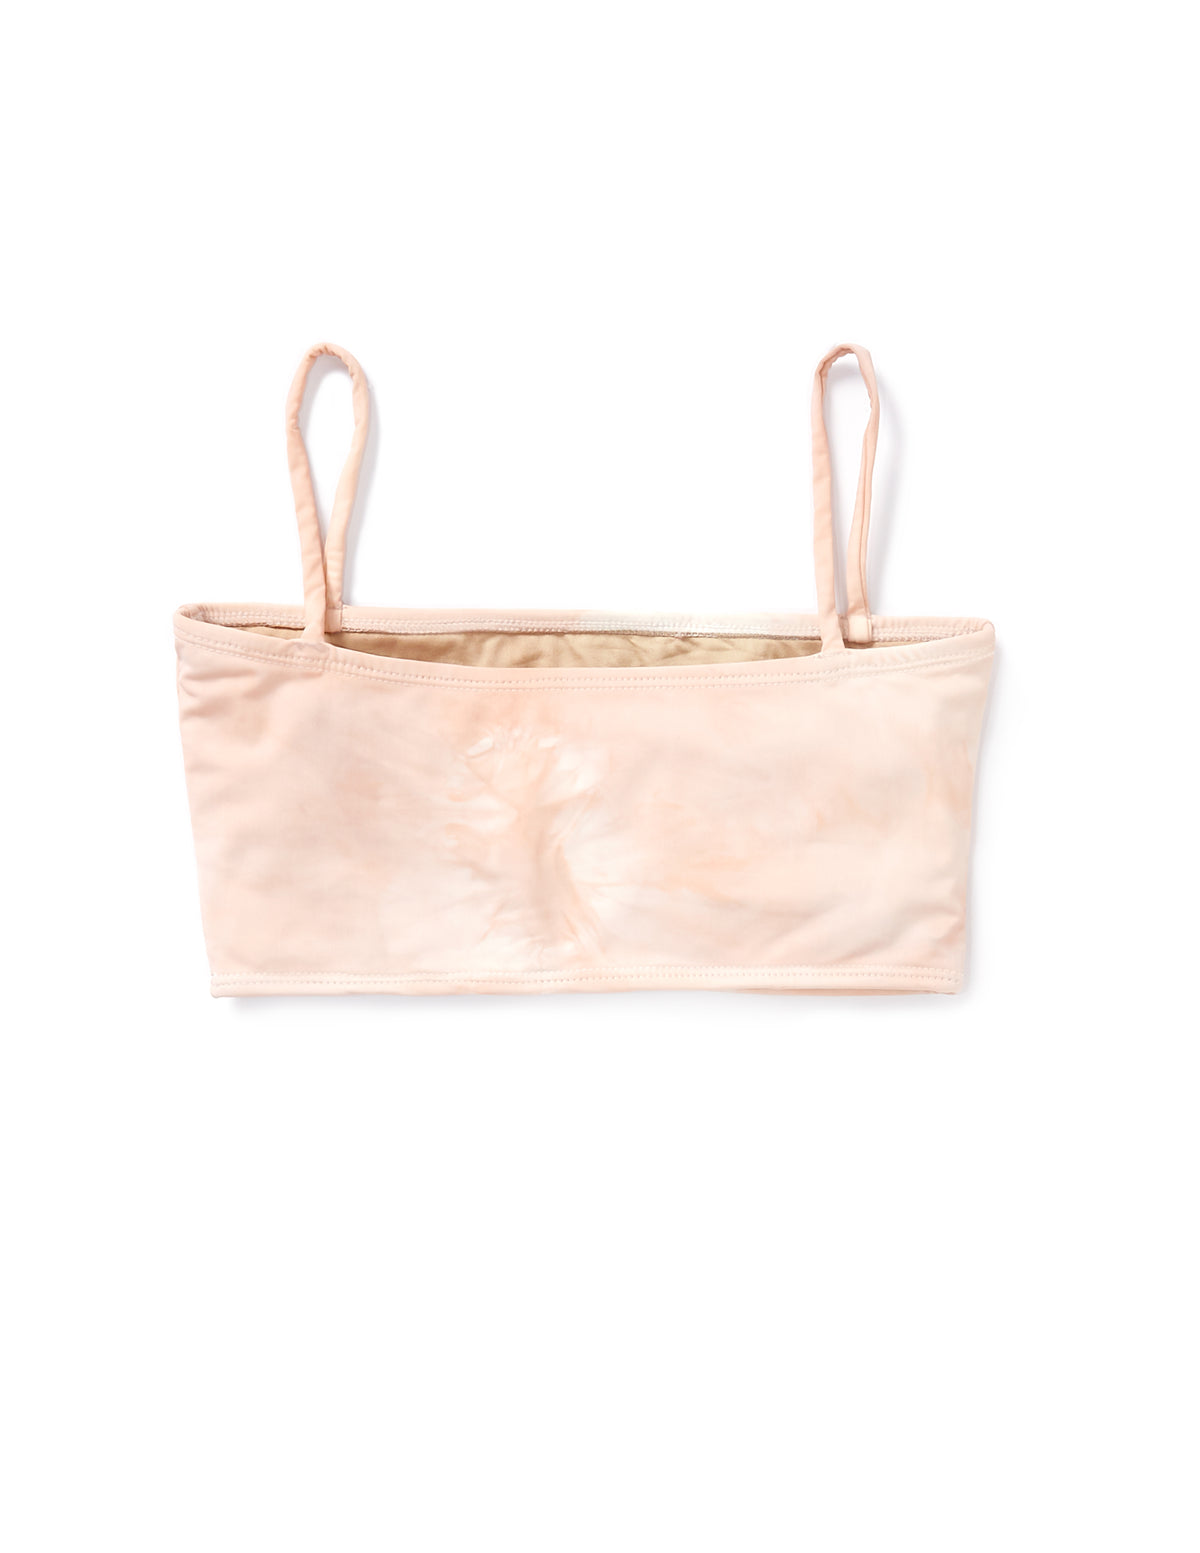 Bandeau Bikini Top Swimsuit in Blush - riverside tool & dye